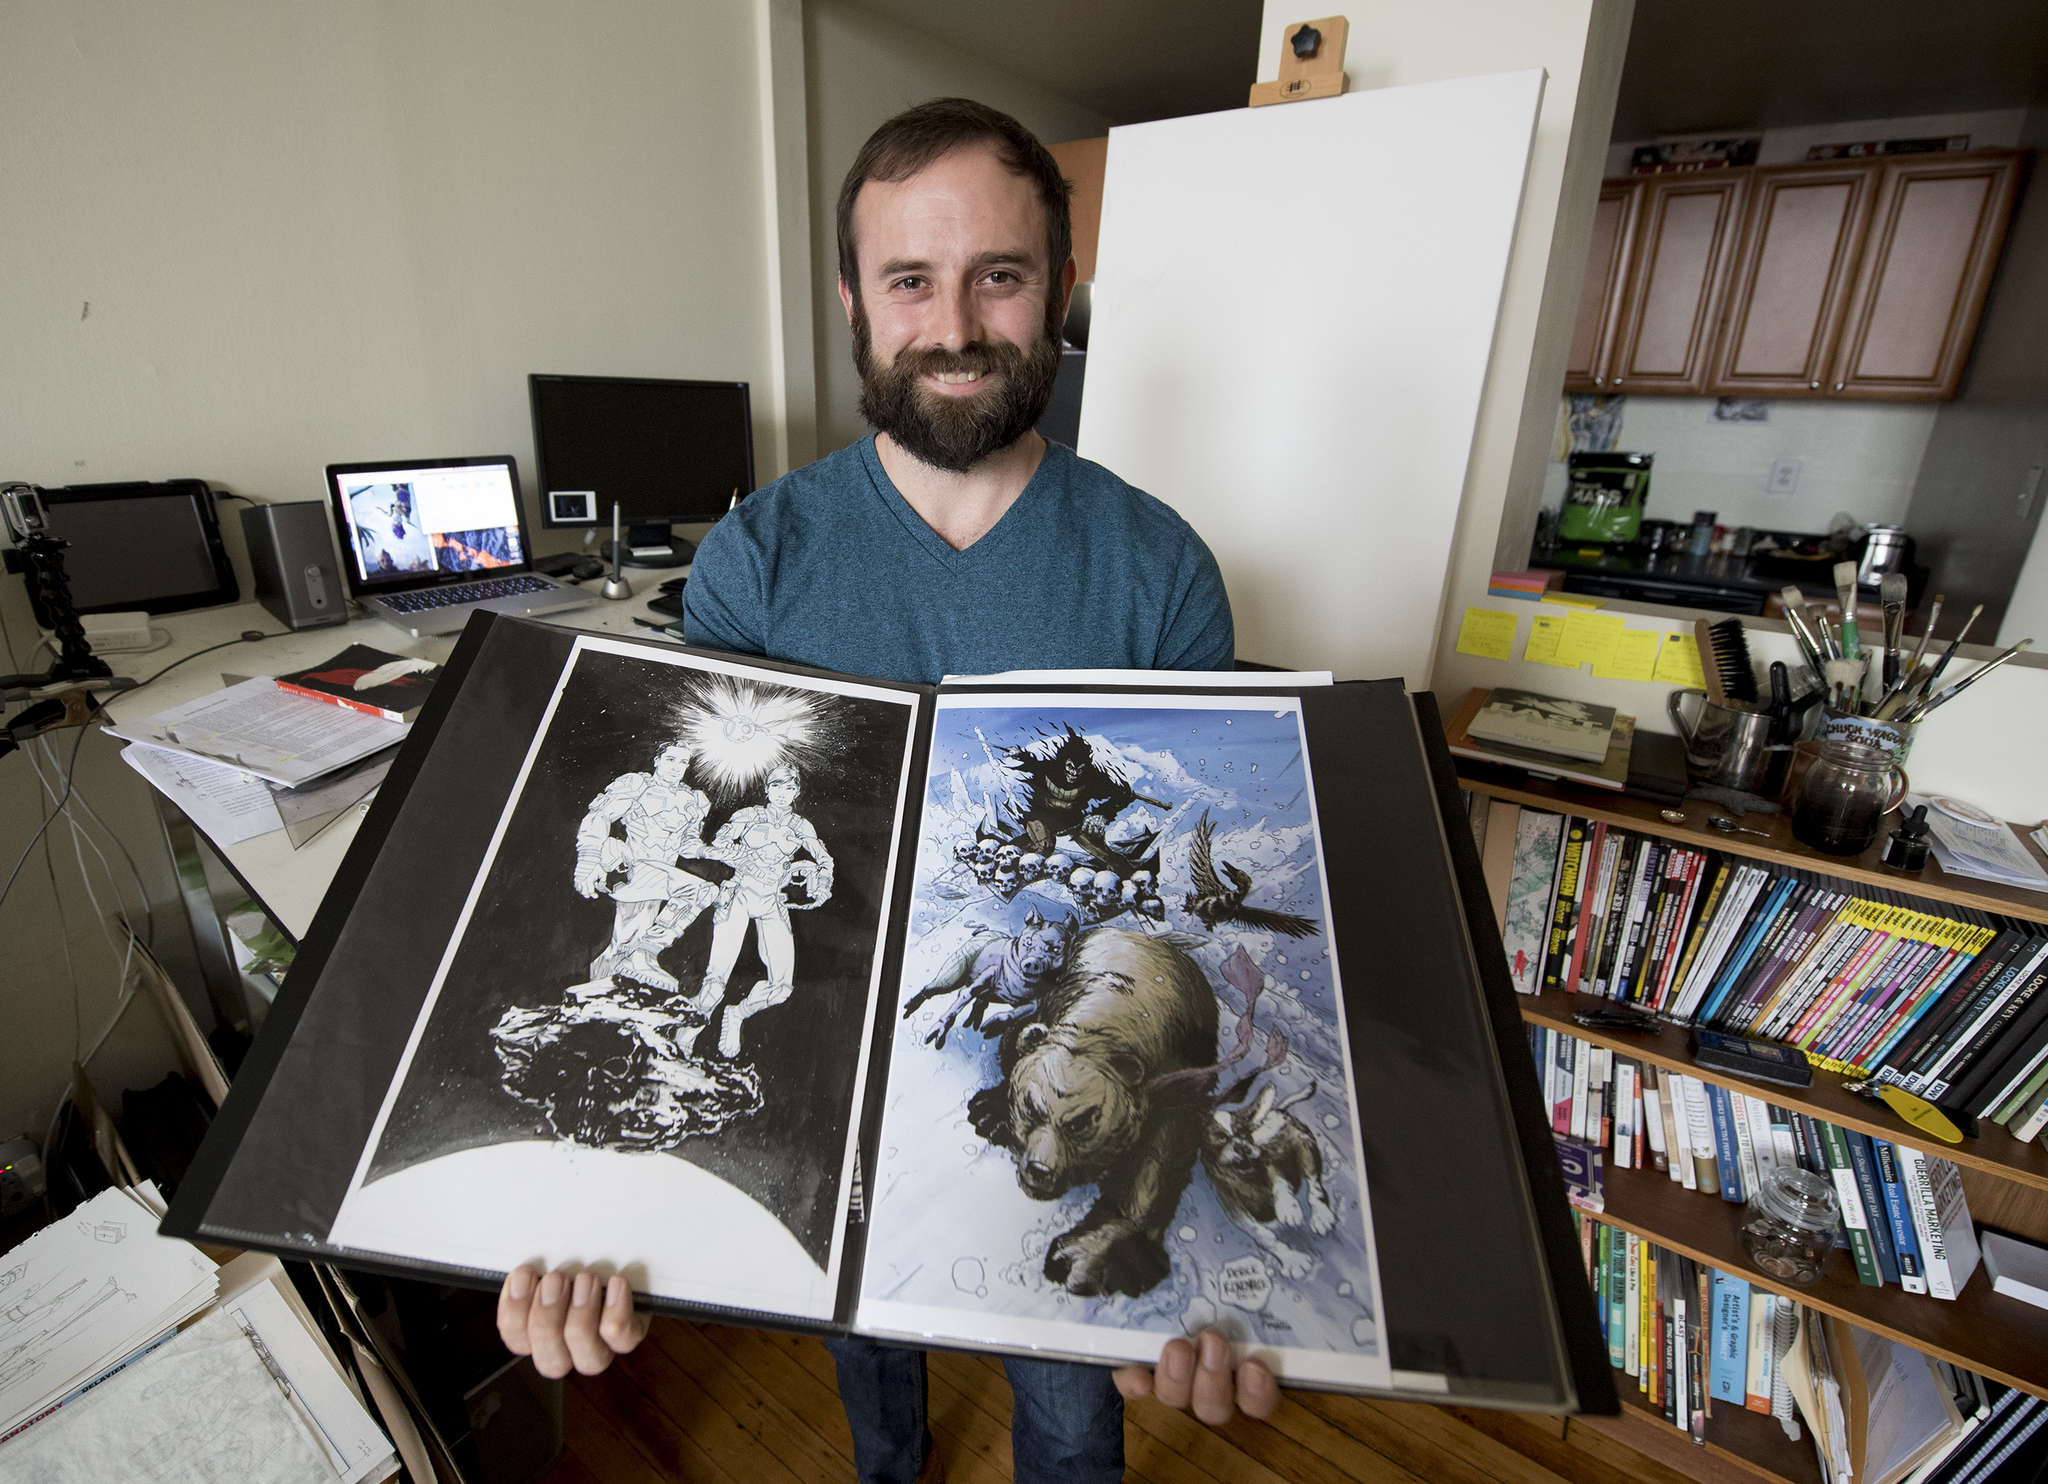 Derek Rodenbeck, who came home with PTSD, says a St. Joseph University program gave him the nudge he needed. He has been hired to work on a comic book based on a movie screenplay.